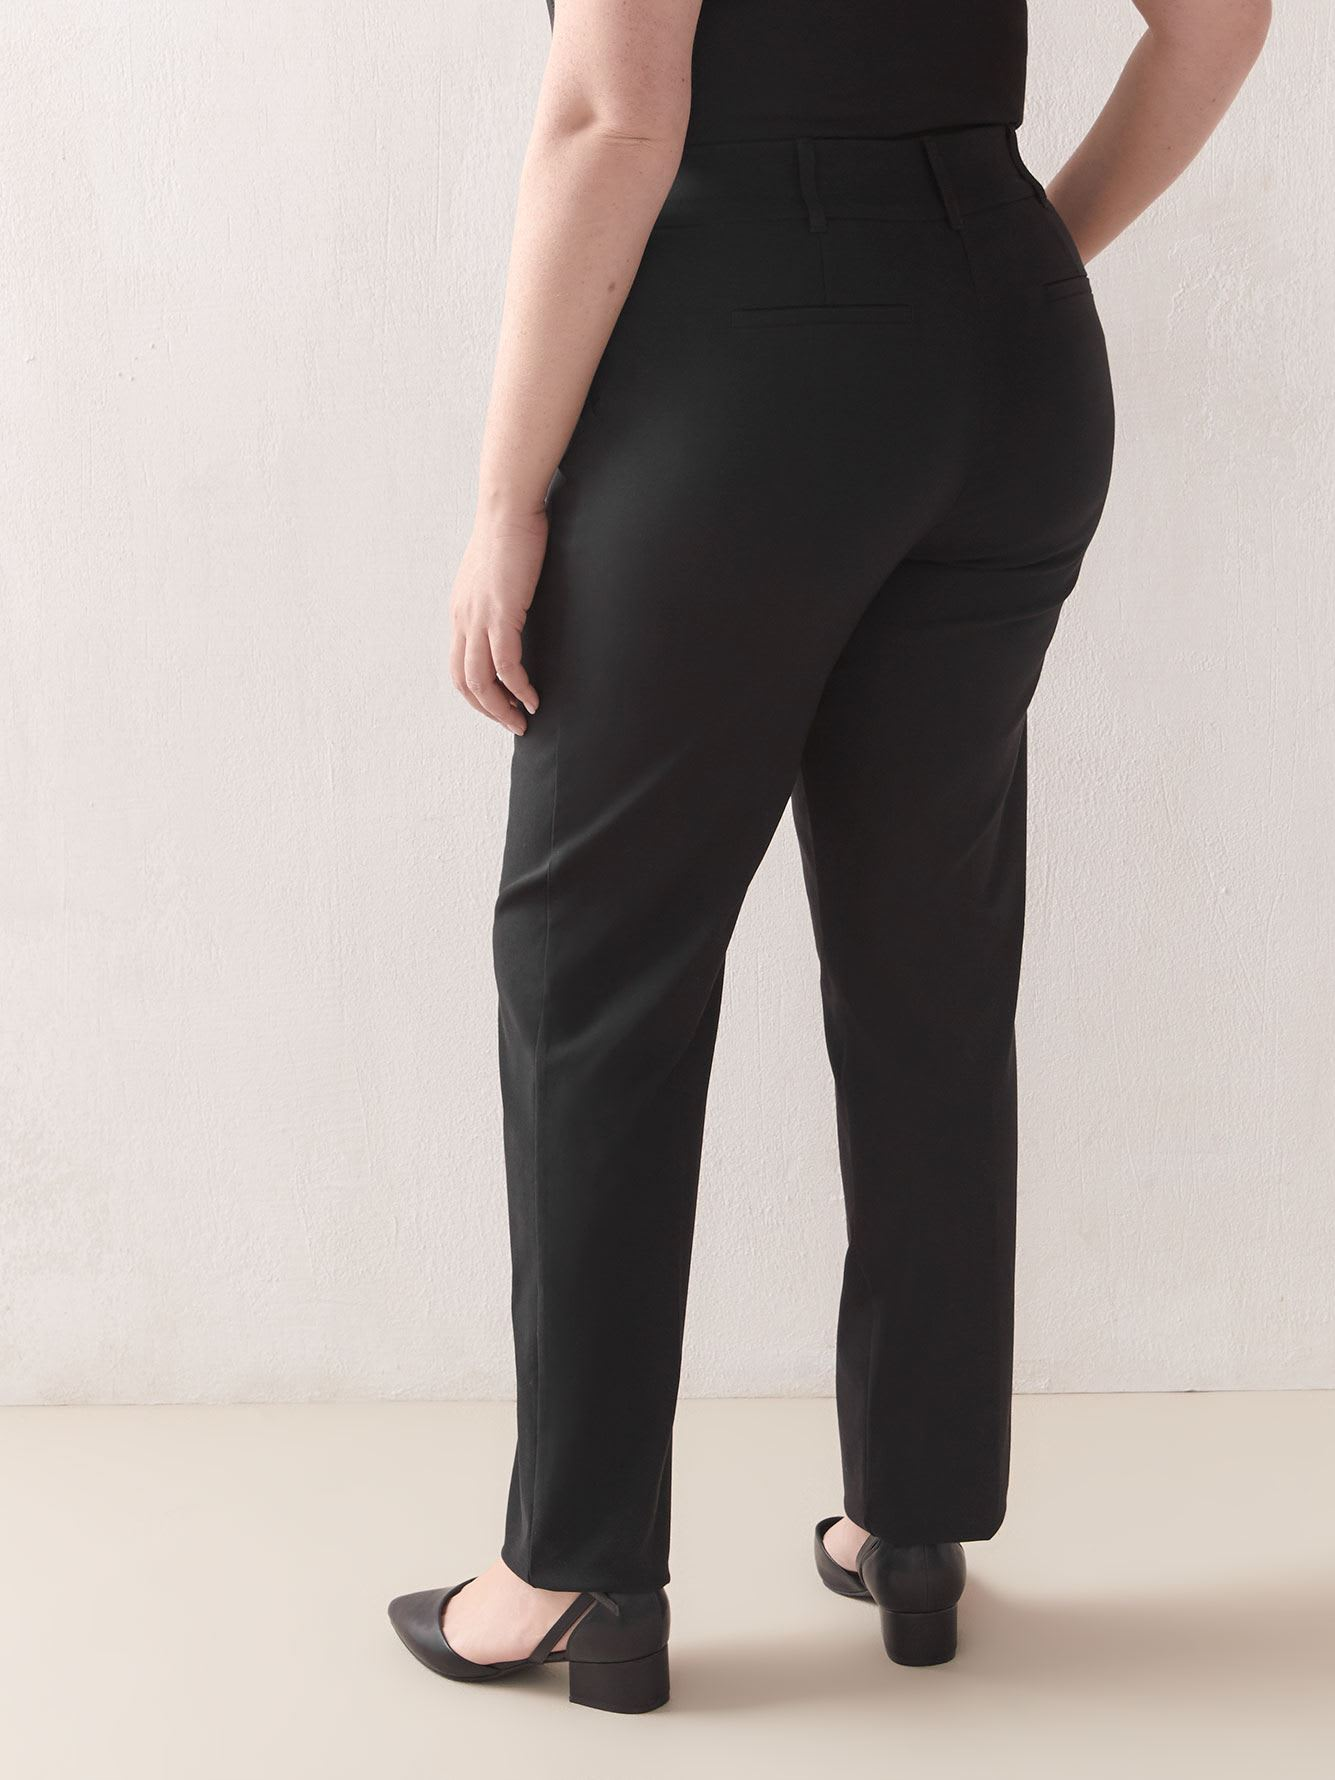 Black Straight-Leg Pant - In Every Story